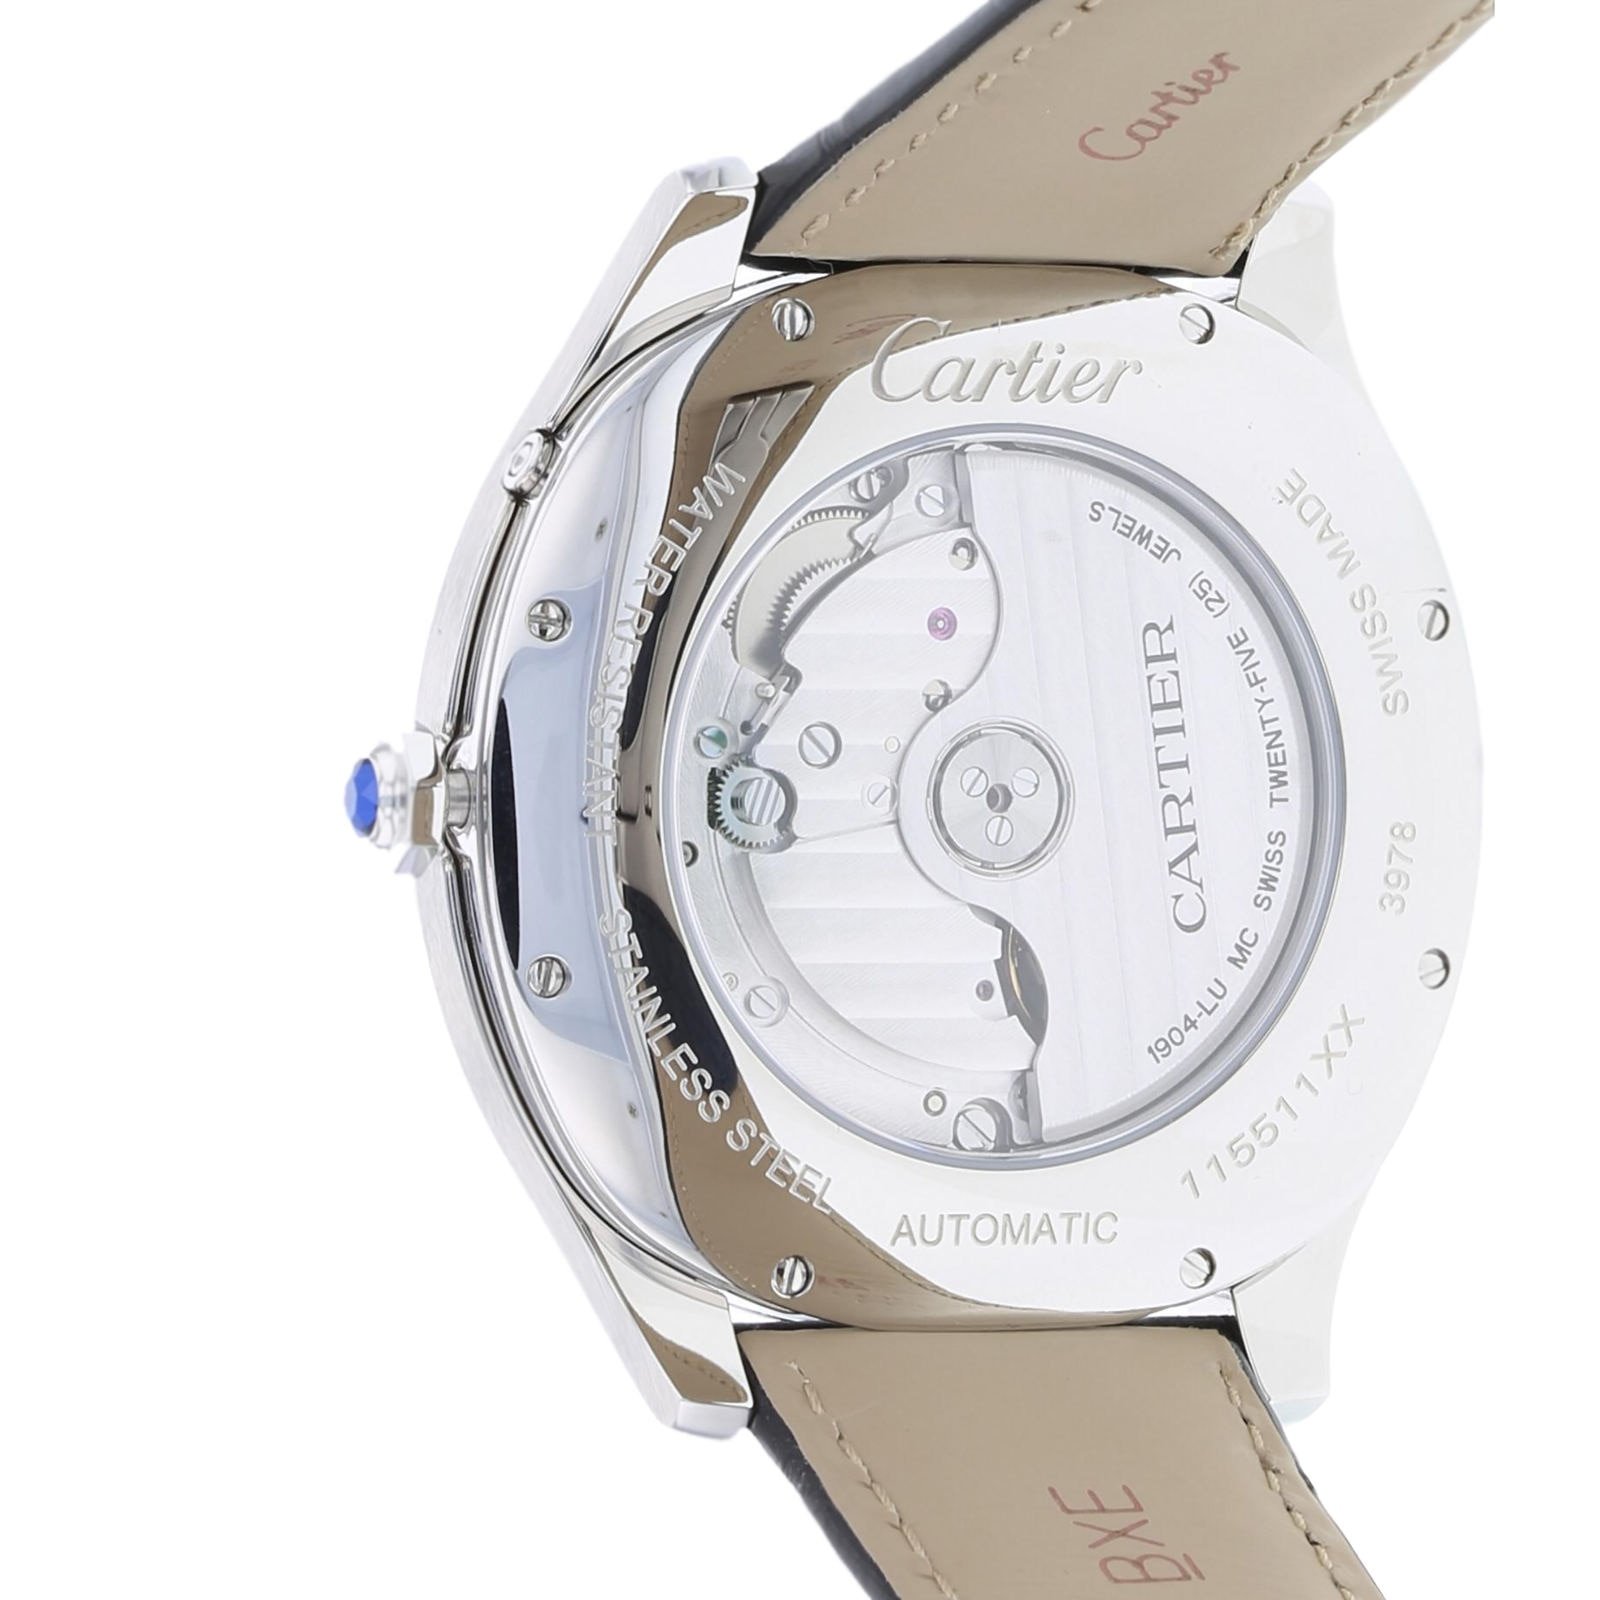 Cartier Drive de Cartier Moon Phases watch Steel, leather